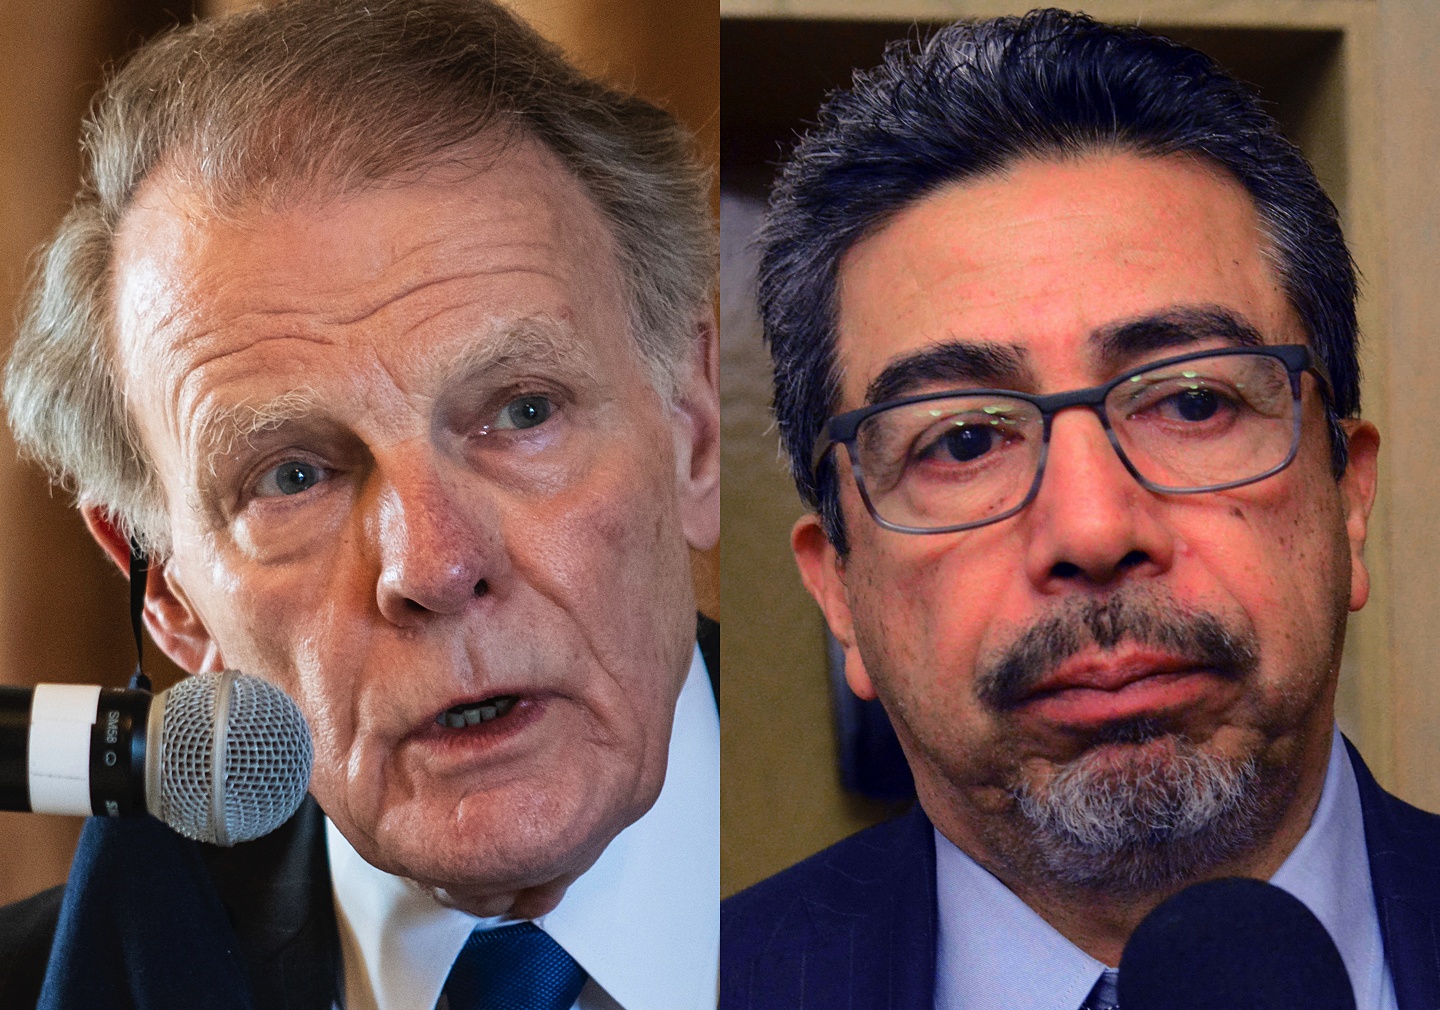 Former Illinois House Speaker Michael Madigan (left) and former Chicago Ald. Danny Solis both gave up their offices and have started taking government pensions even as federal authorities have been investigating their actions.